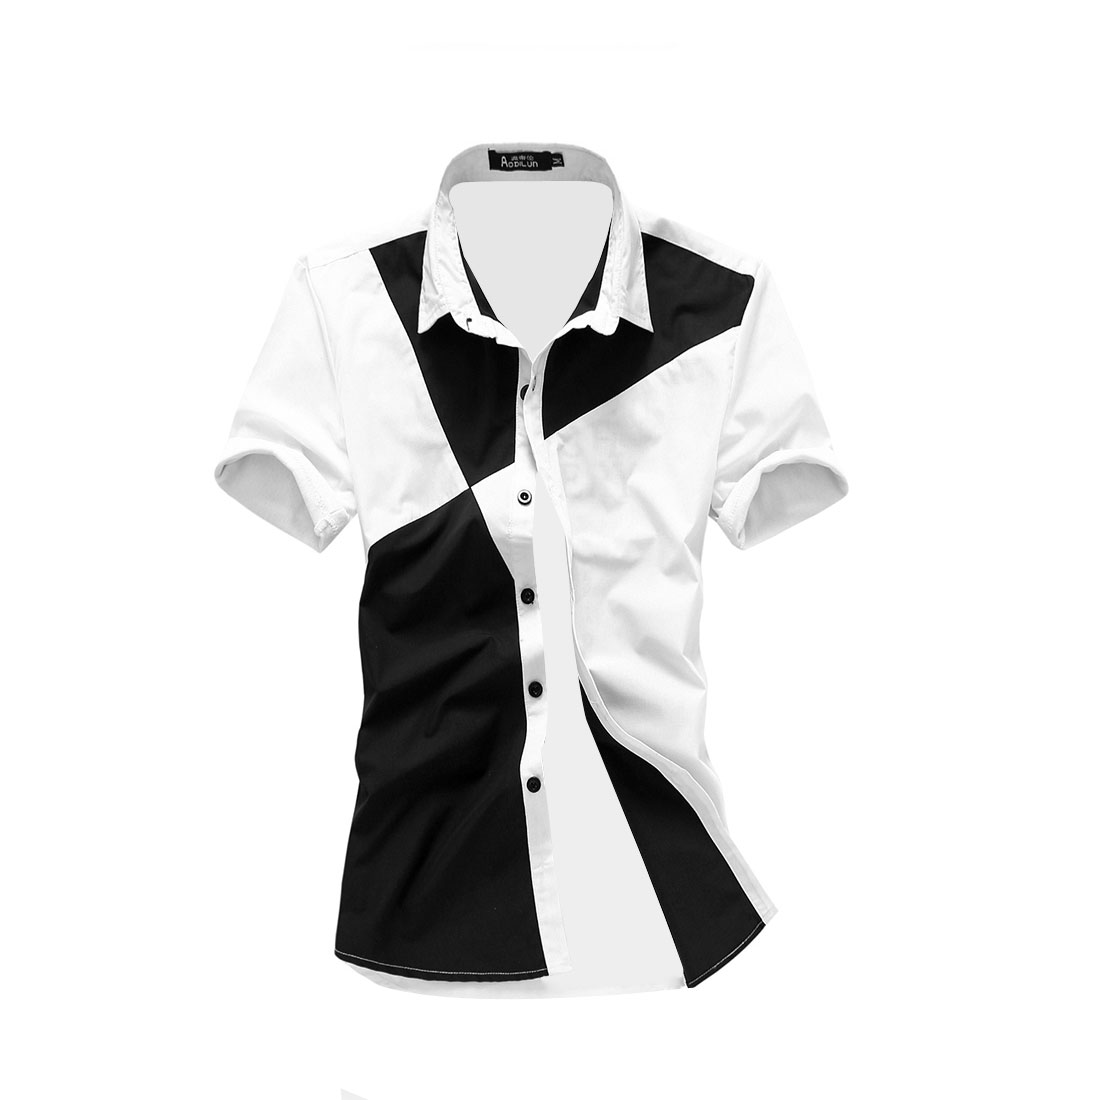 Men Black White M Short Sleeve Button Front Point Collar Casual Shirt